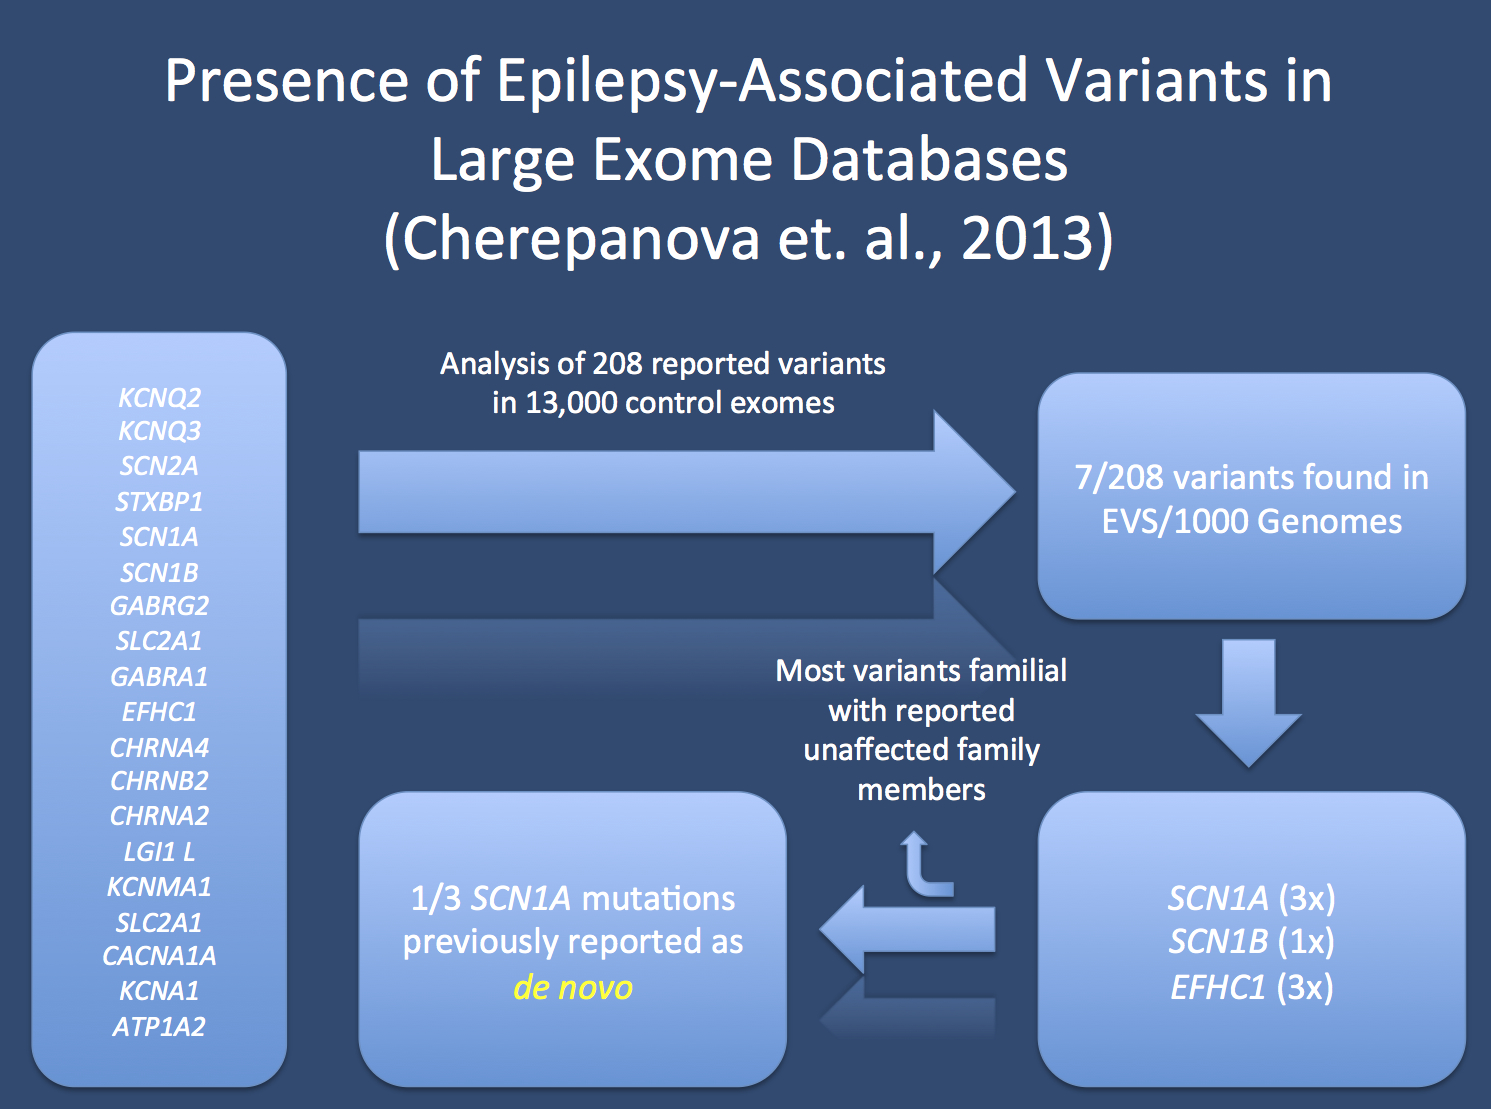 Study by Cherepanova et al. on the presence of epilepsy-related genetic variants in large exome datasets. The authors queried the Exome Variant Server and the 1000 Genomes Project for reported pathogenic variants in 19 genes known to cause epilepsy. The identified 7 variants present in these databases, including one SCN1A mutation previously reported as a de novo mutation in a patient with Severe Infantile Multifocal Epilepsy. In addition, three EFHC1 mutations appear at low frequency in these databases and are reported in 40-100 individuals in these databases.